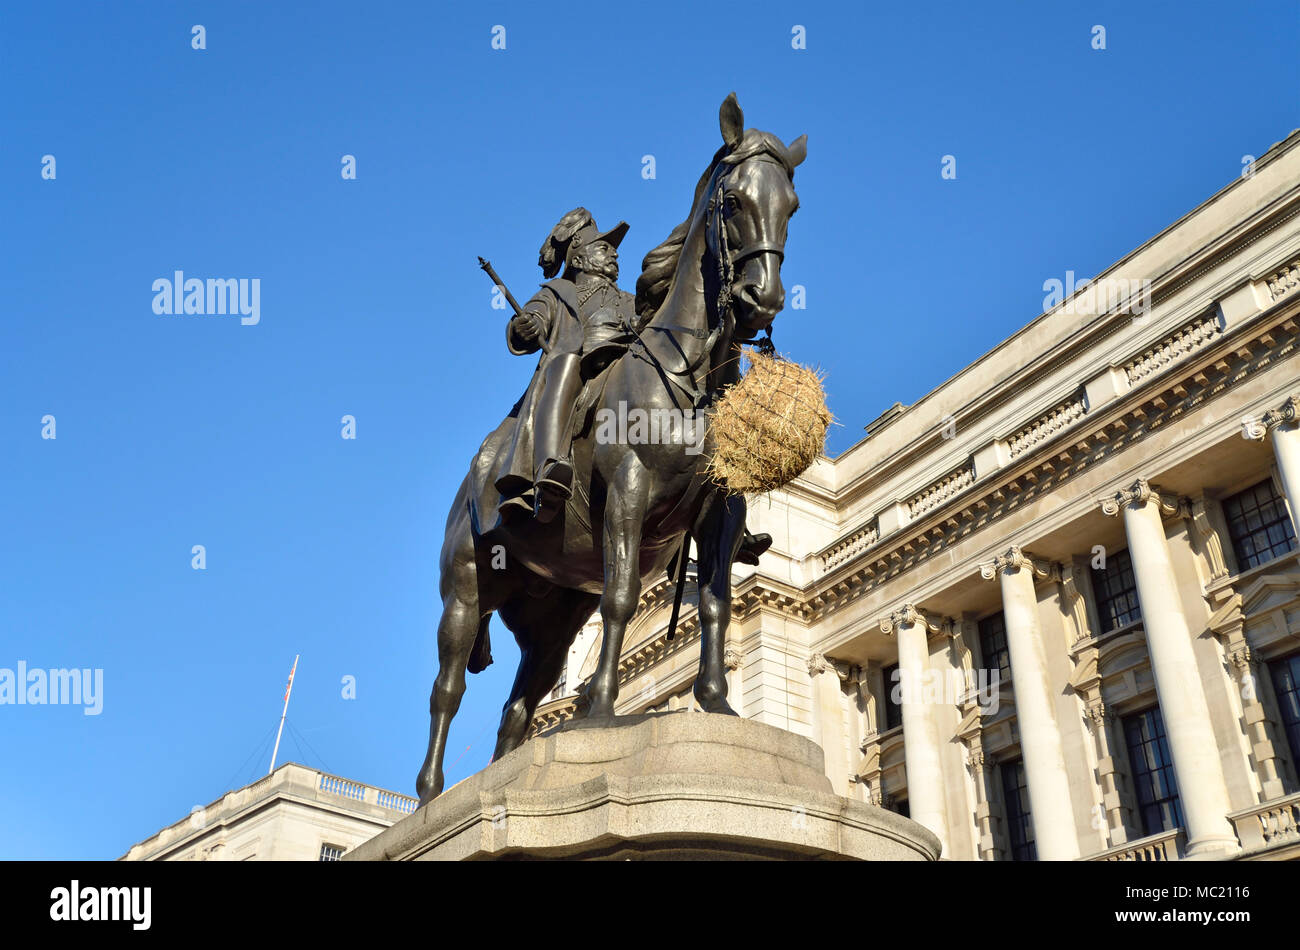 London, England, UK. Statue (by Adrian Jones, 1905) of Prince George, with bag of hay traditionally fed to the horse over the Christmas holidays - .... Stock Photo